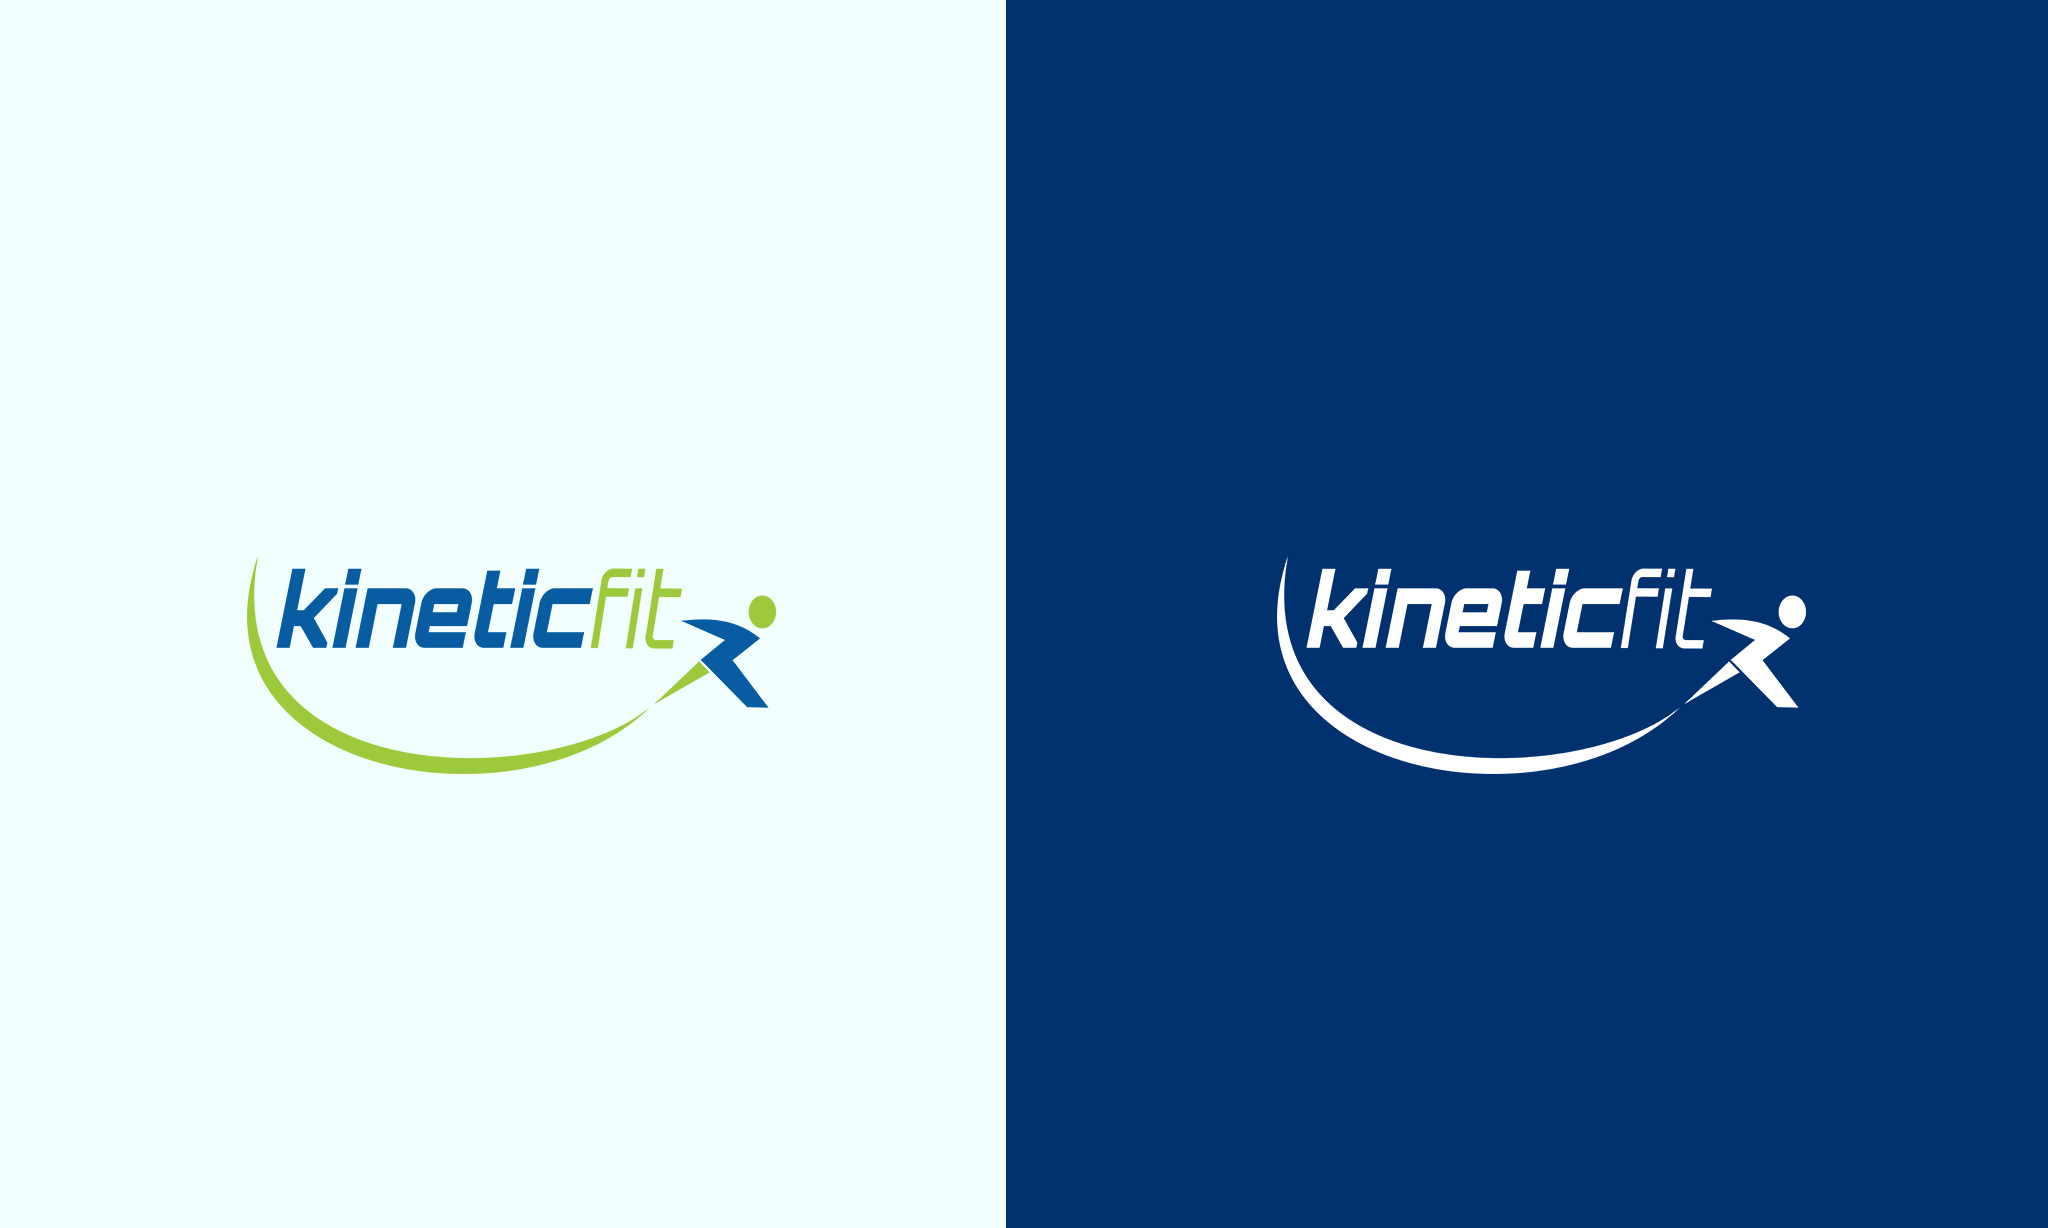 creare-logo-kinetic-fit